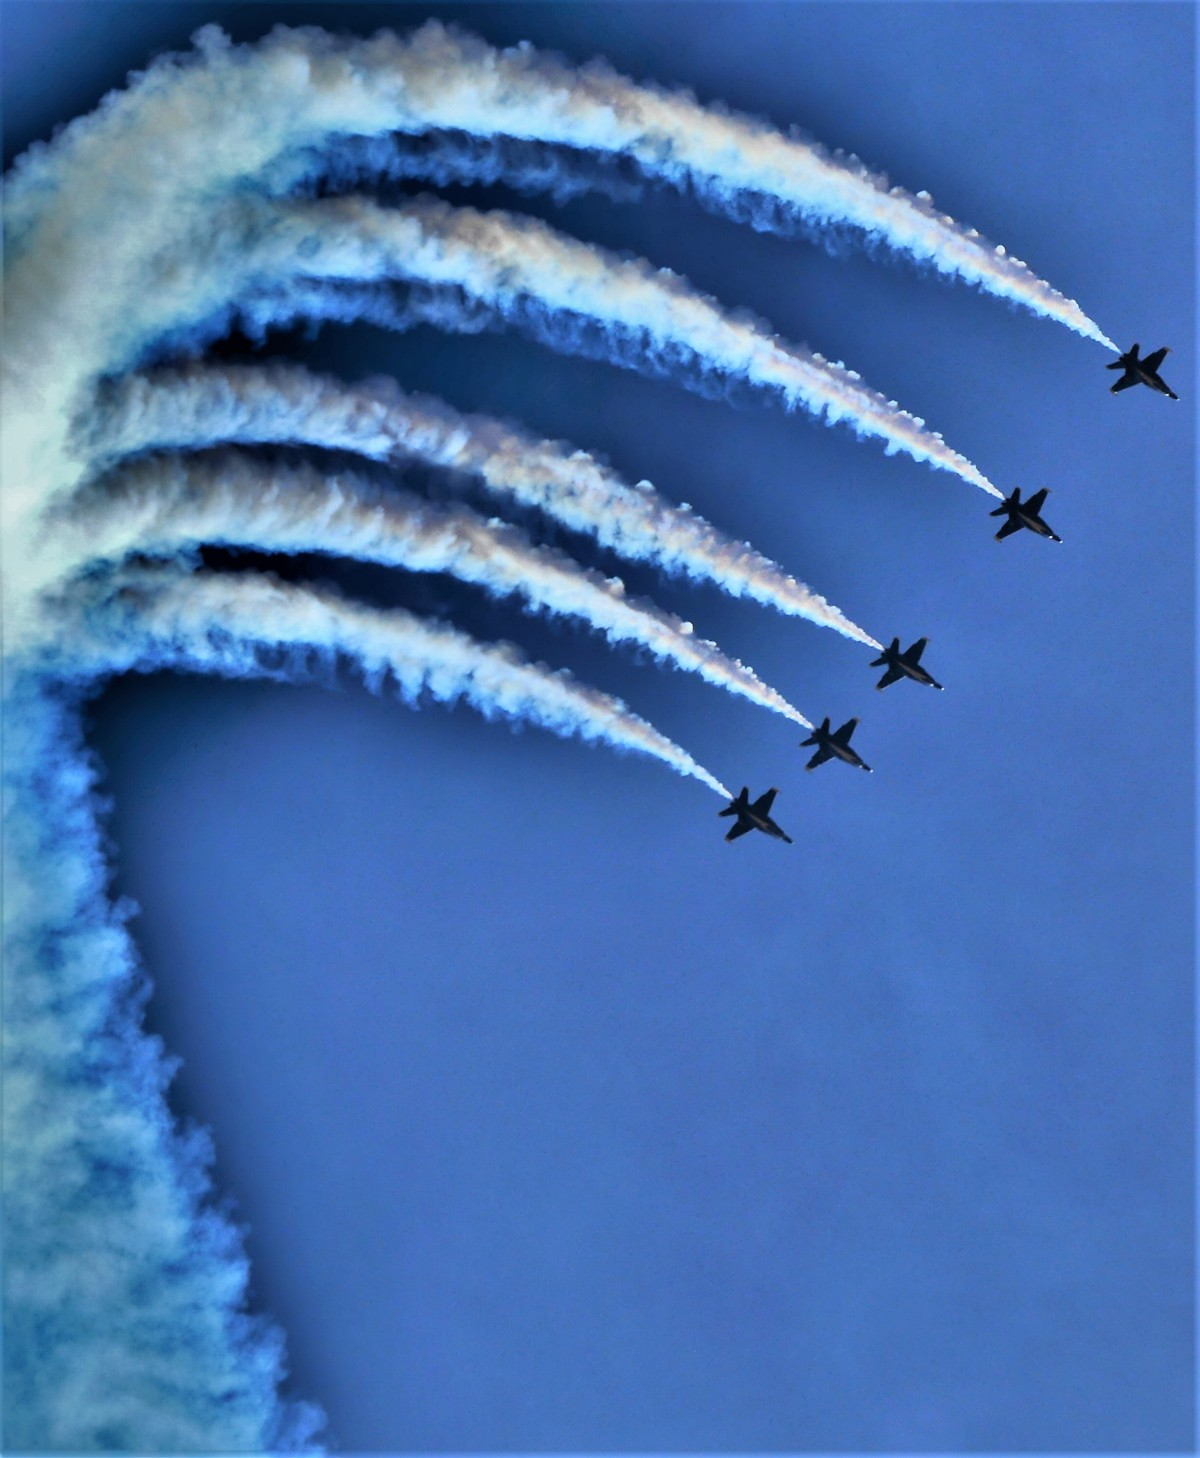 Blue Angels contrails